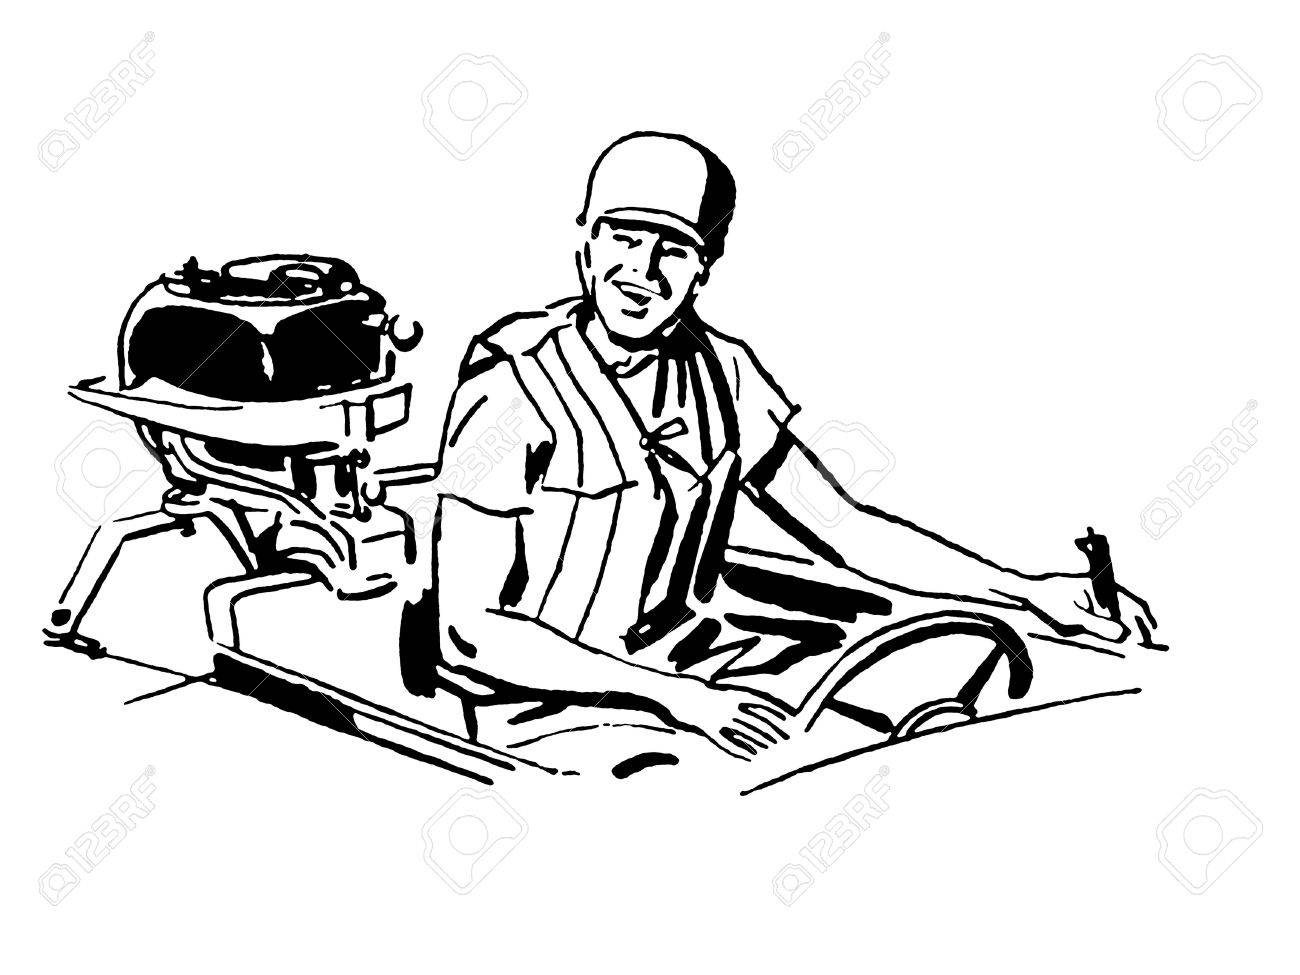 A black and white version of a vintage illustration of a man driving a boat Stock Photo - 14917709